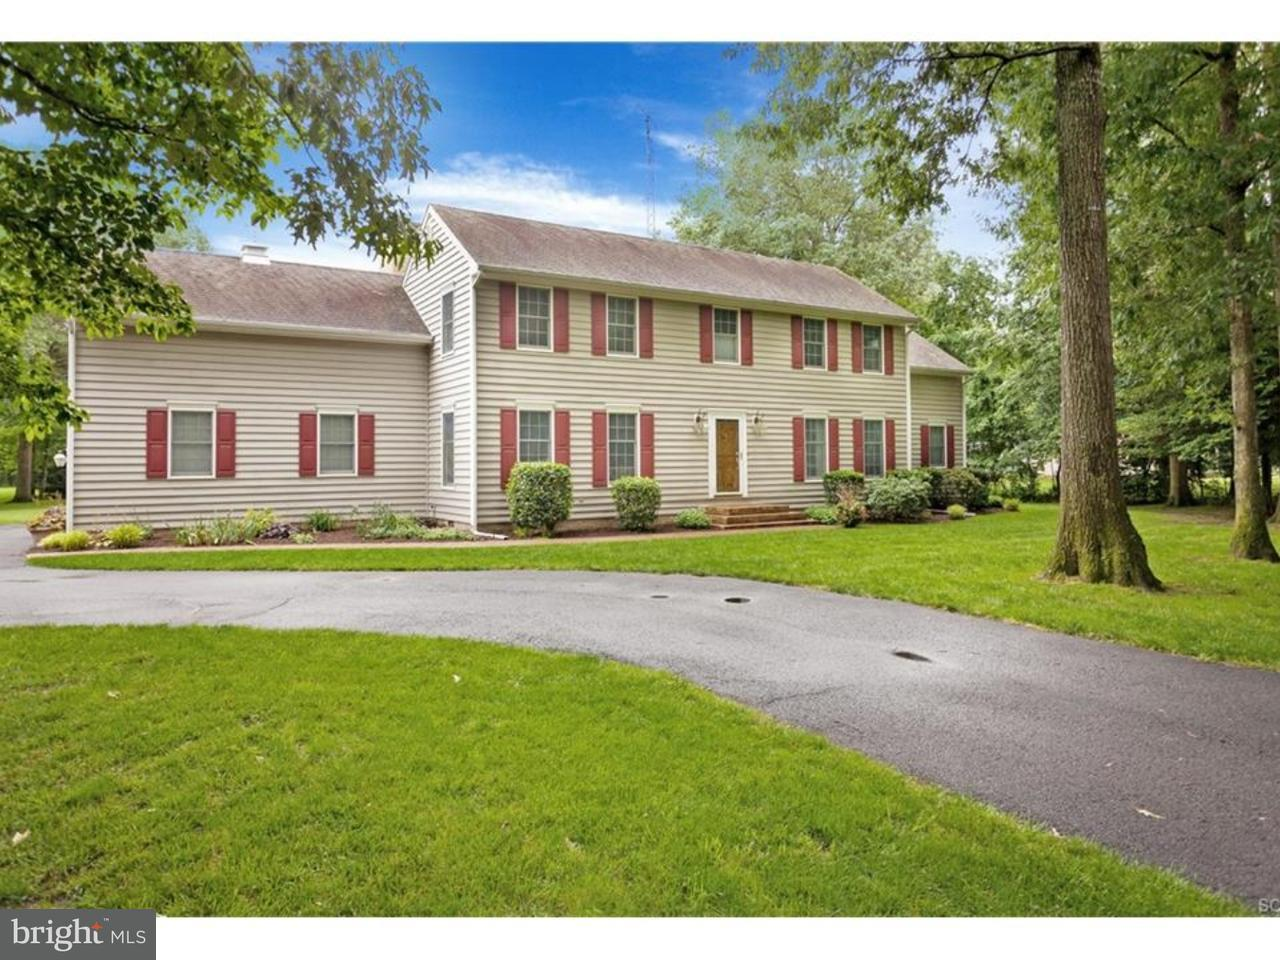 Single Family Home for Sale at 15581 QUAIL HOLLOW Road Greenwood, Delaware 19950 United States